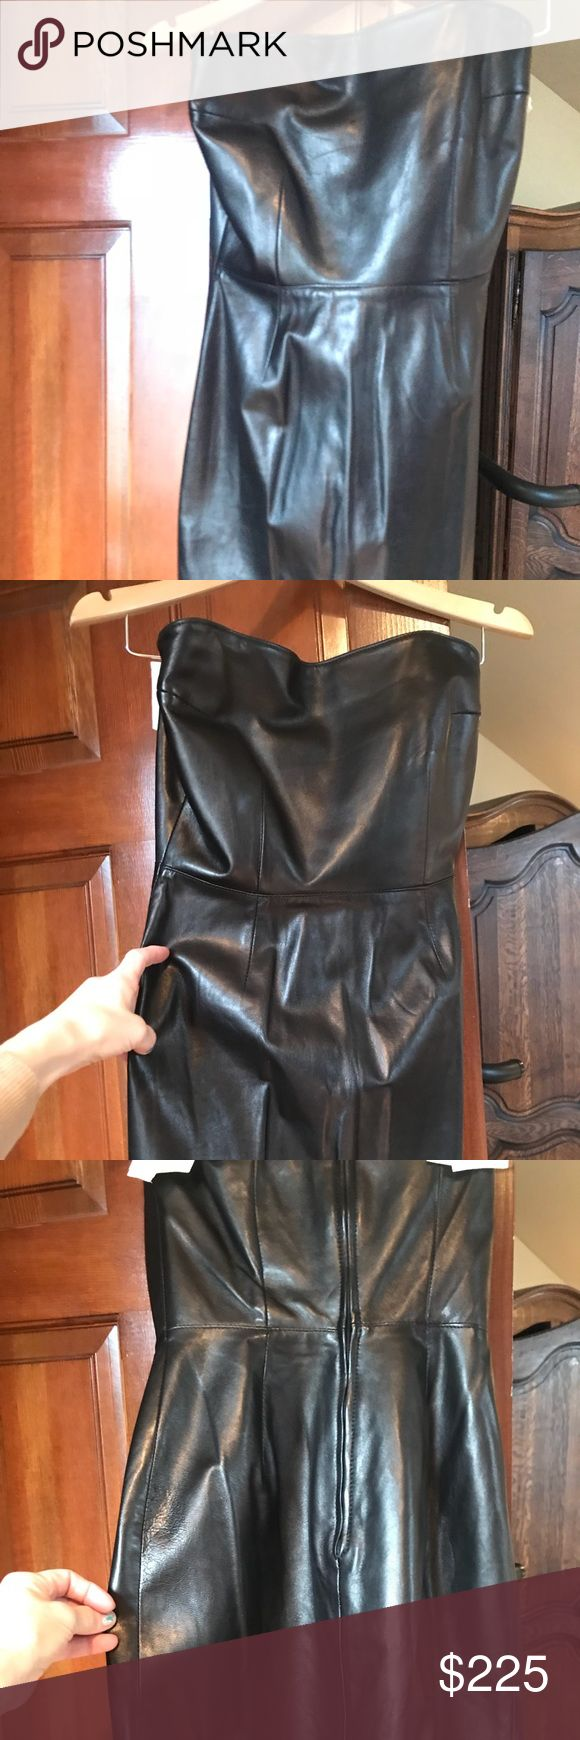 Vintage Strapless Leather Mini Dress Michael Hoban Bought at North beach Leather in Houston. Vintage and in perfect condition. Lined. Real leather. Mini skirt. Bodycon. Size 4, but fits more like a 2. I'm a natural size 4 and it doesn't fit me anymore. It fit me when I was a size 2. Non smoking home.  Last picture is a Michael Hoban leather dress much like mine, except mine is shorter. Micheal Hoban Dresses Strapless